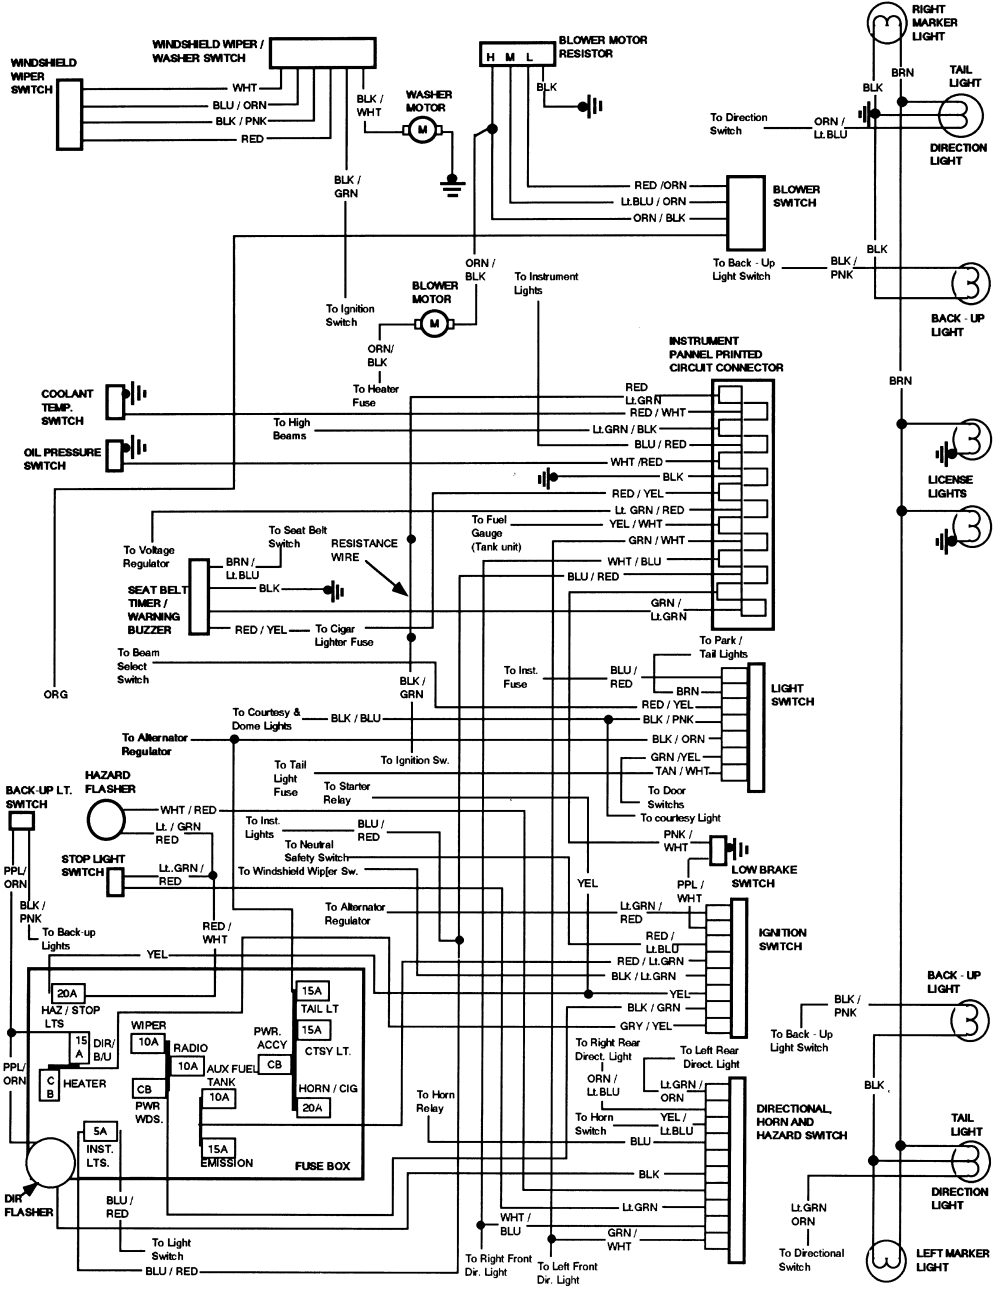 DIAGRAM] 79 Ford F700 Wiring Diagram FULL Version HD Quality Wiring Diagram  - MILSDIAGRAM.POLISPORTCAPOLIVERI.IT | 1980 Ford Ignition Wiring Diagram Schematic |  | Polisport Capoliveri